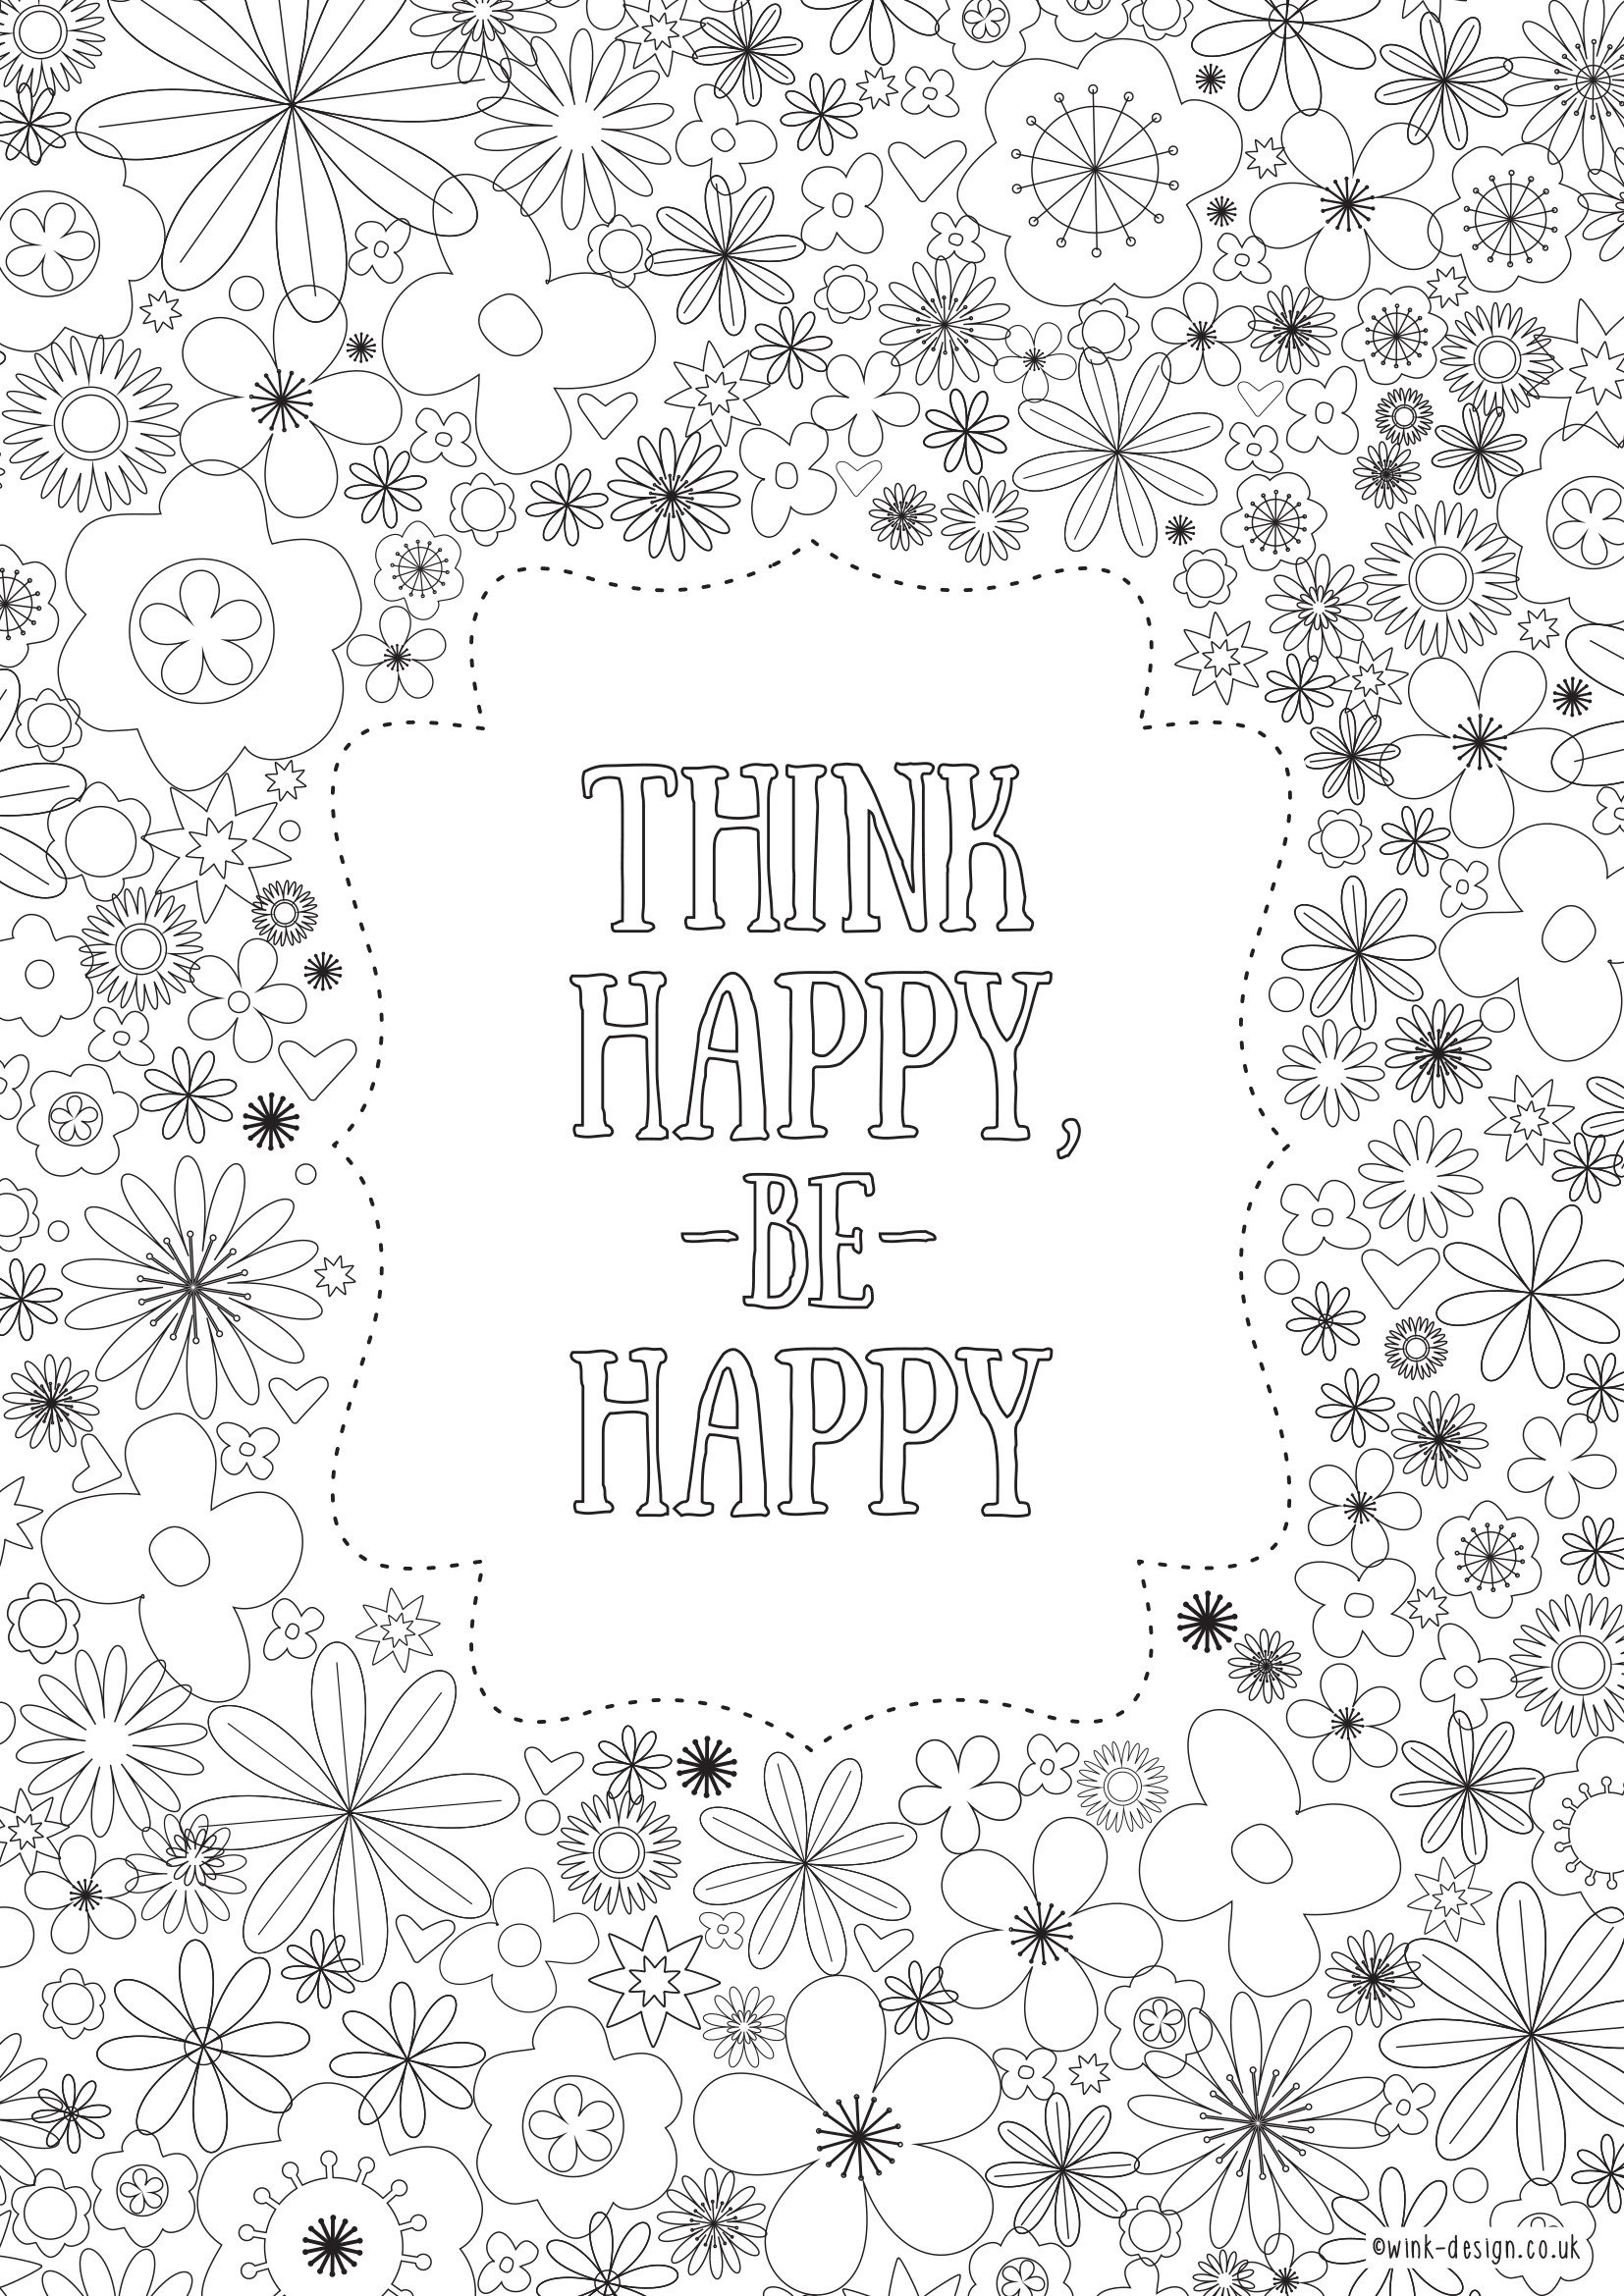 Quote Coloring Pages For Adults  Printable Coloring Sheets For Adults Quotes About